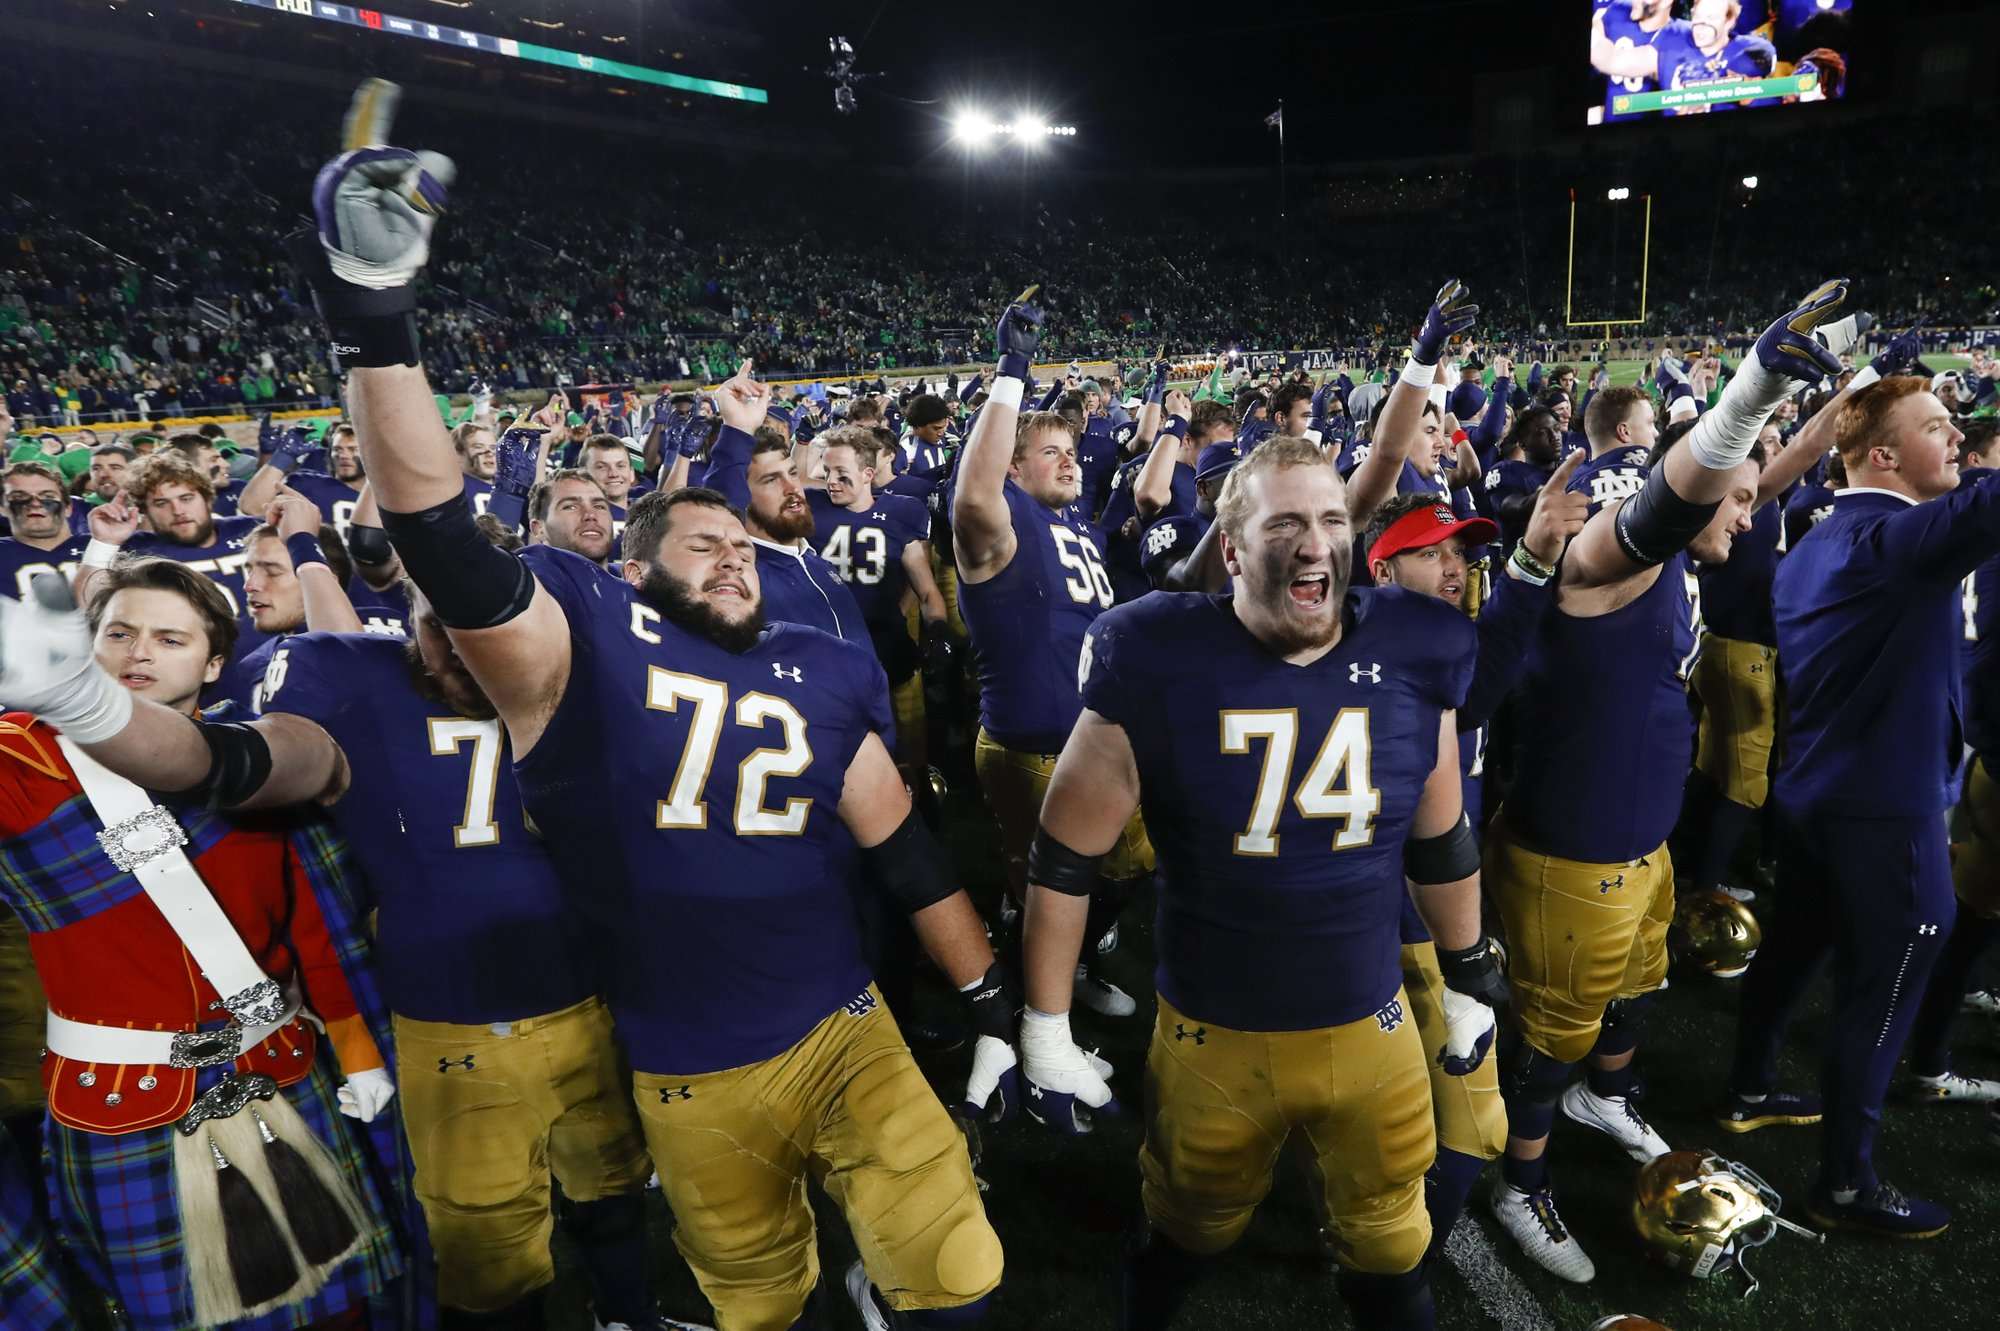 No. 8 Irish need to win out and have help for playoff berth